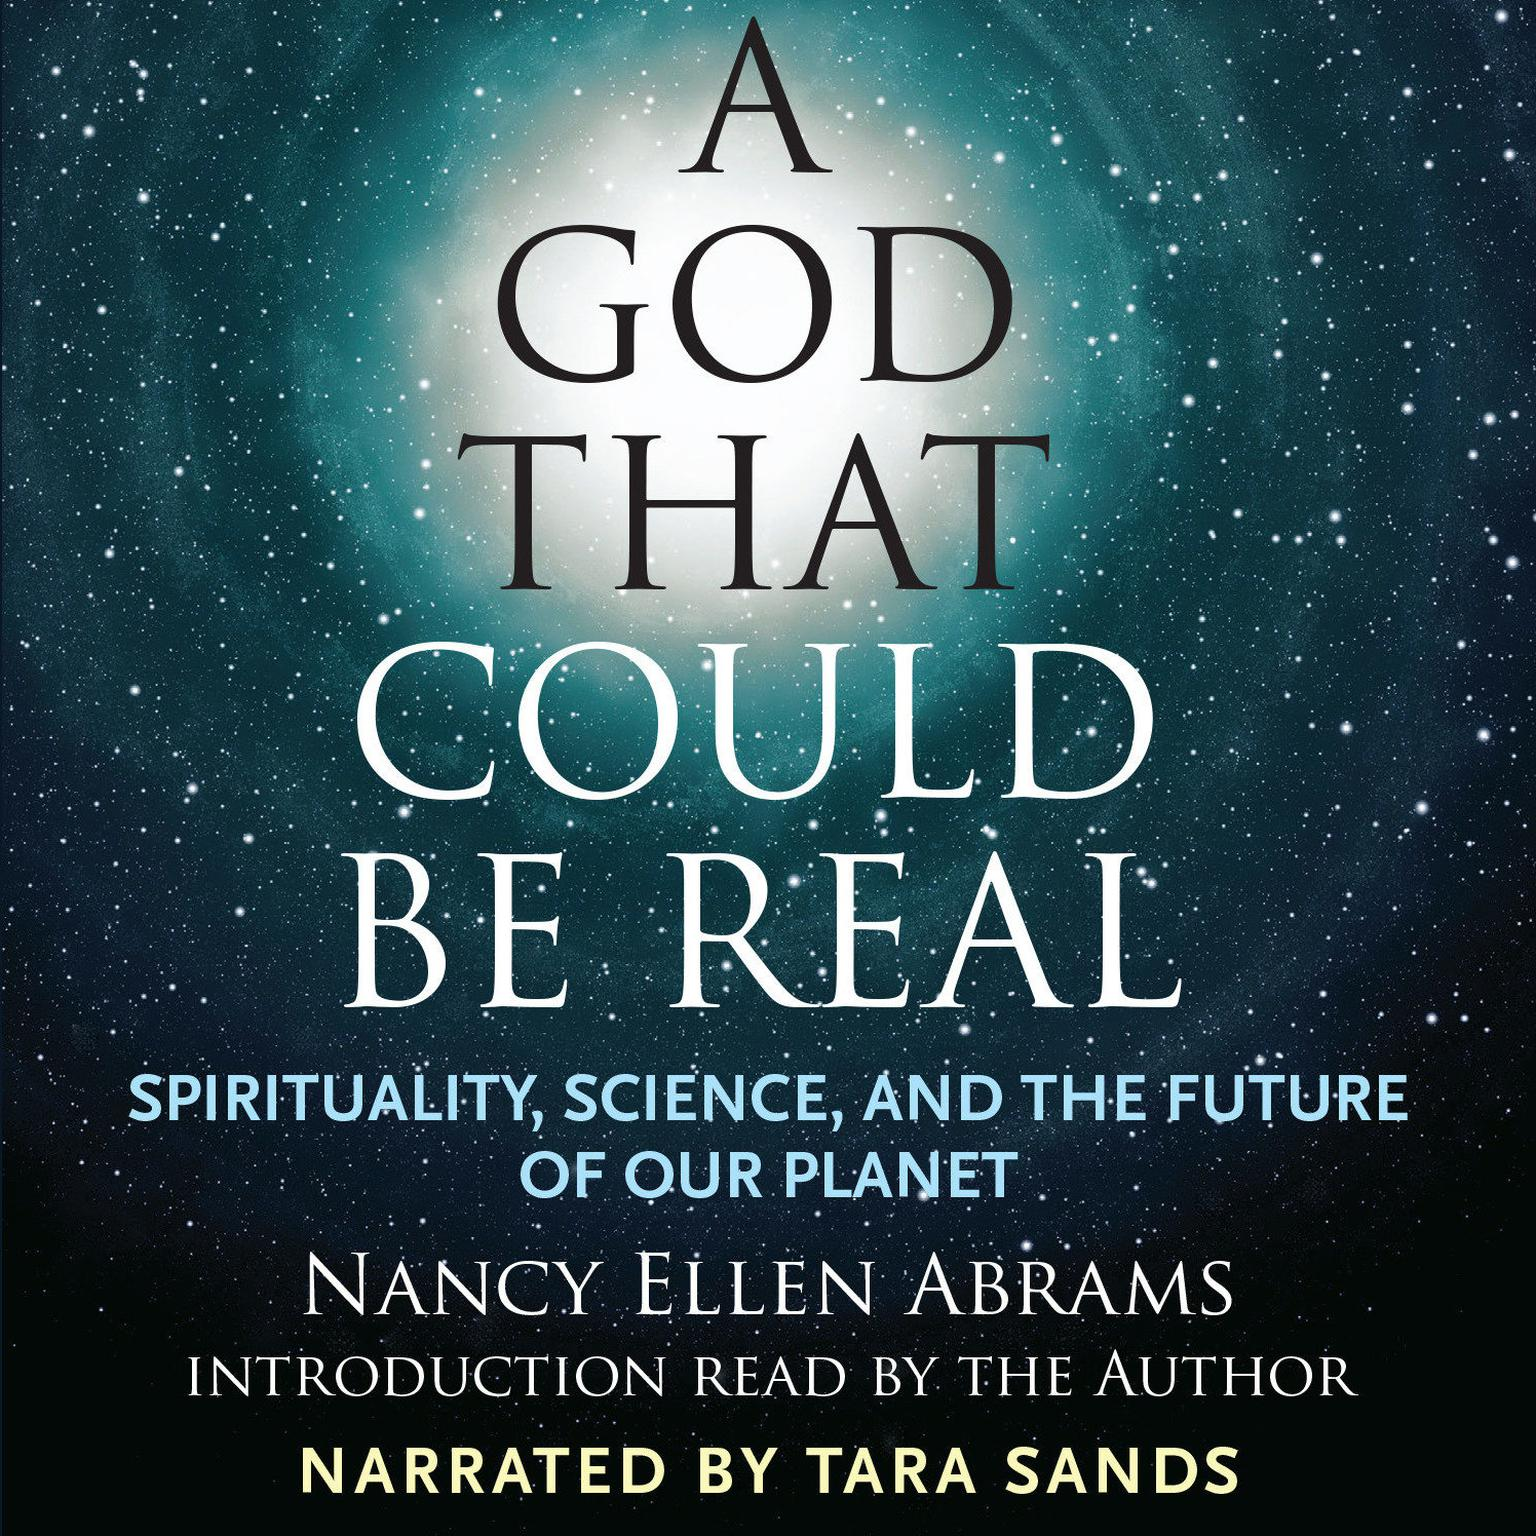 Printable A God That Could Be Real: Spirituality, Science, and the Future of Our Planet Audiobook Cover Art